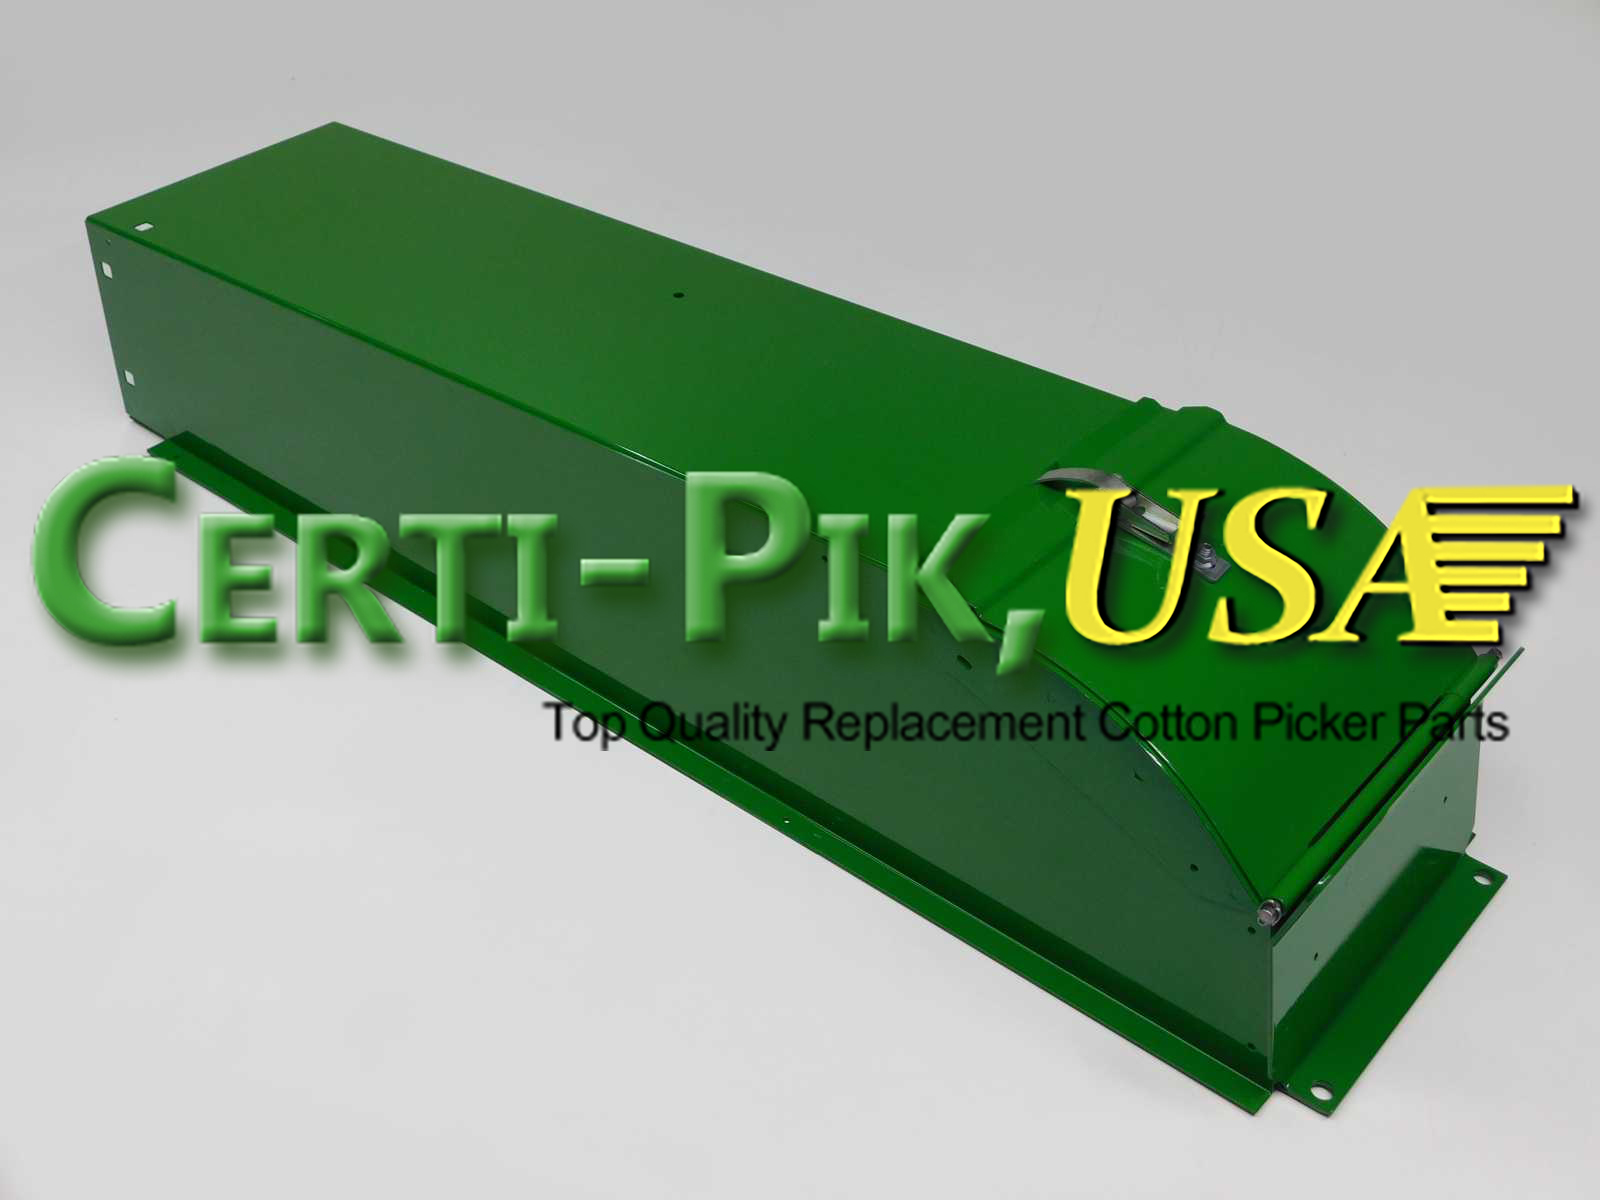 Air System: John Deere 9935-CP690 Pro Suction Door Parts AN276679 (76679) for Sale